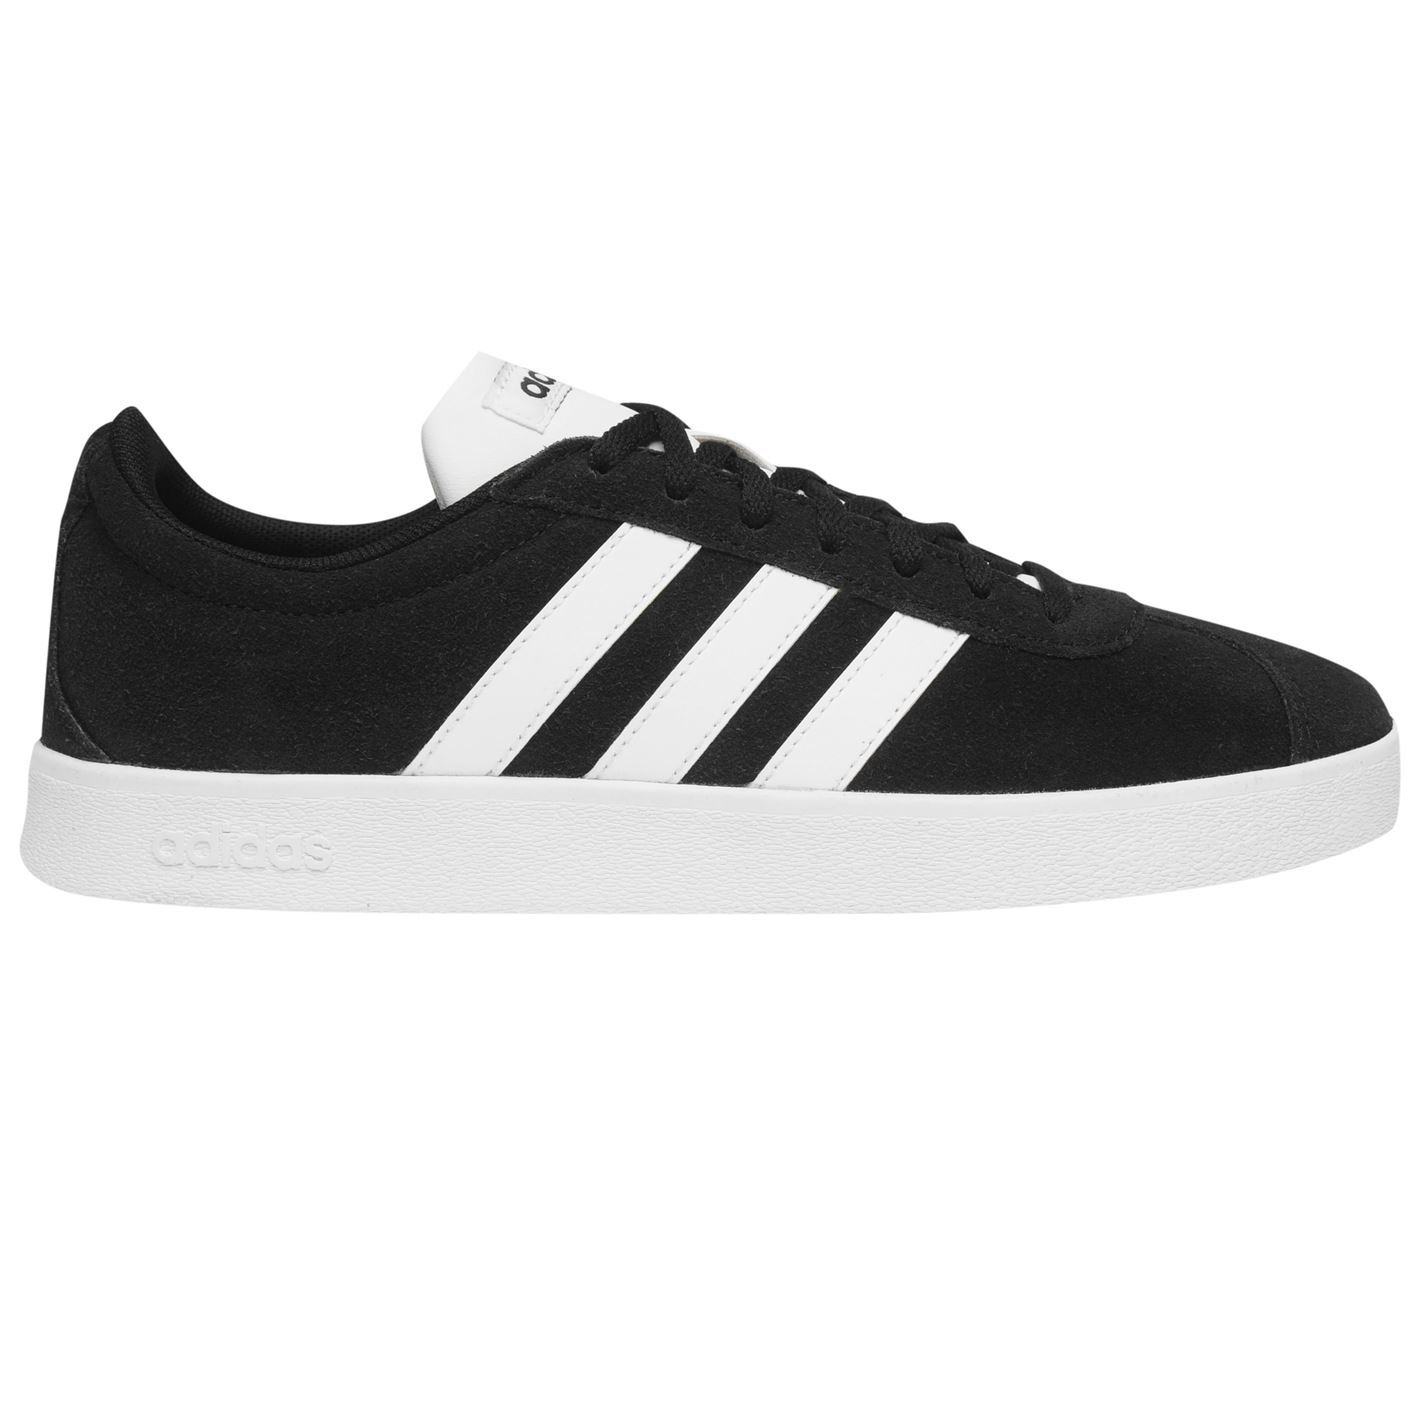 cbe88771a adidas VL Court 2 Shoes Mens Footwear Trainers Sneakers